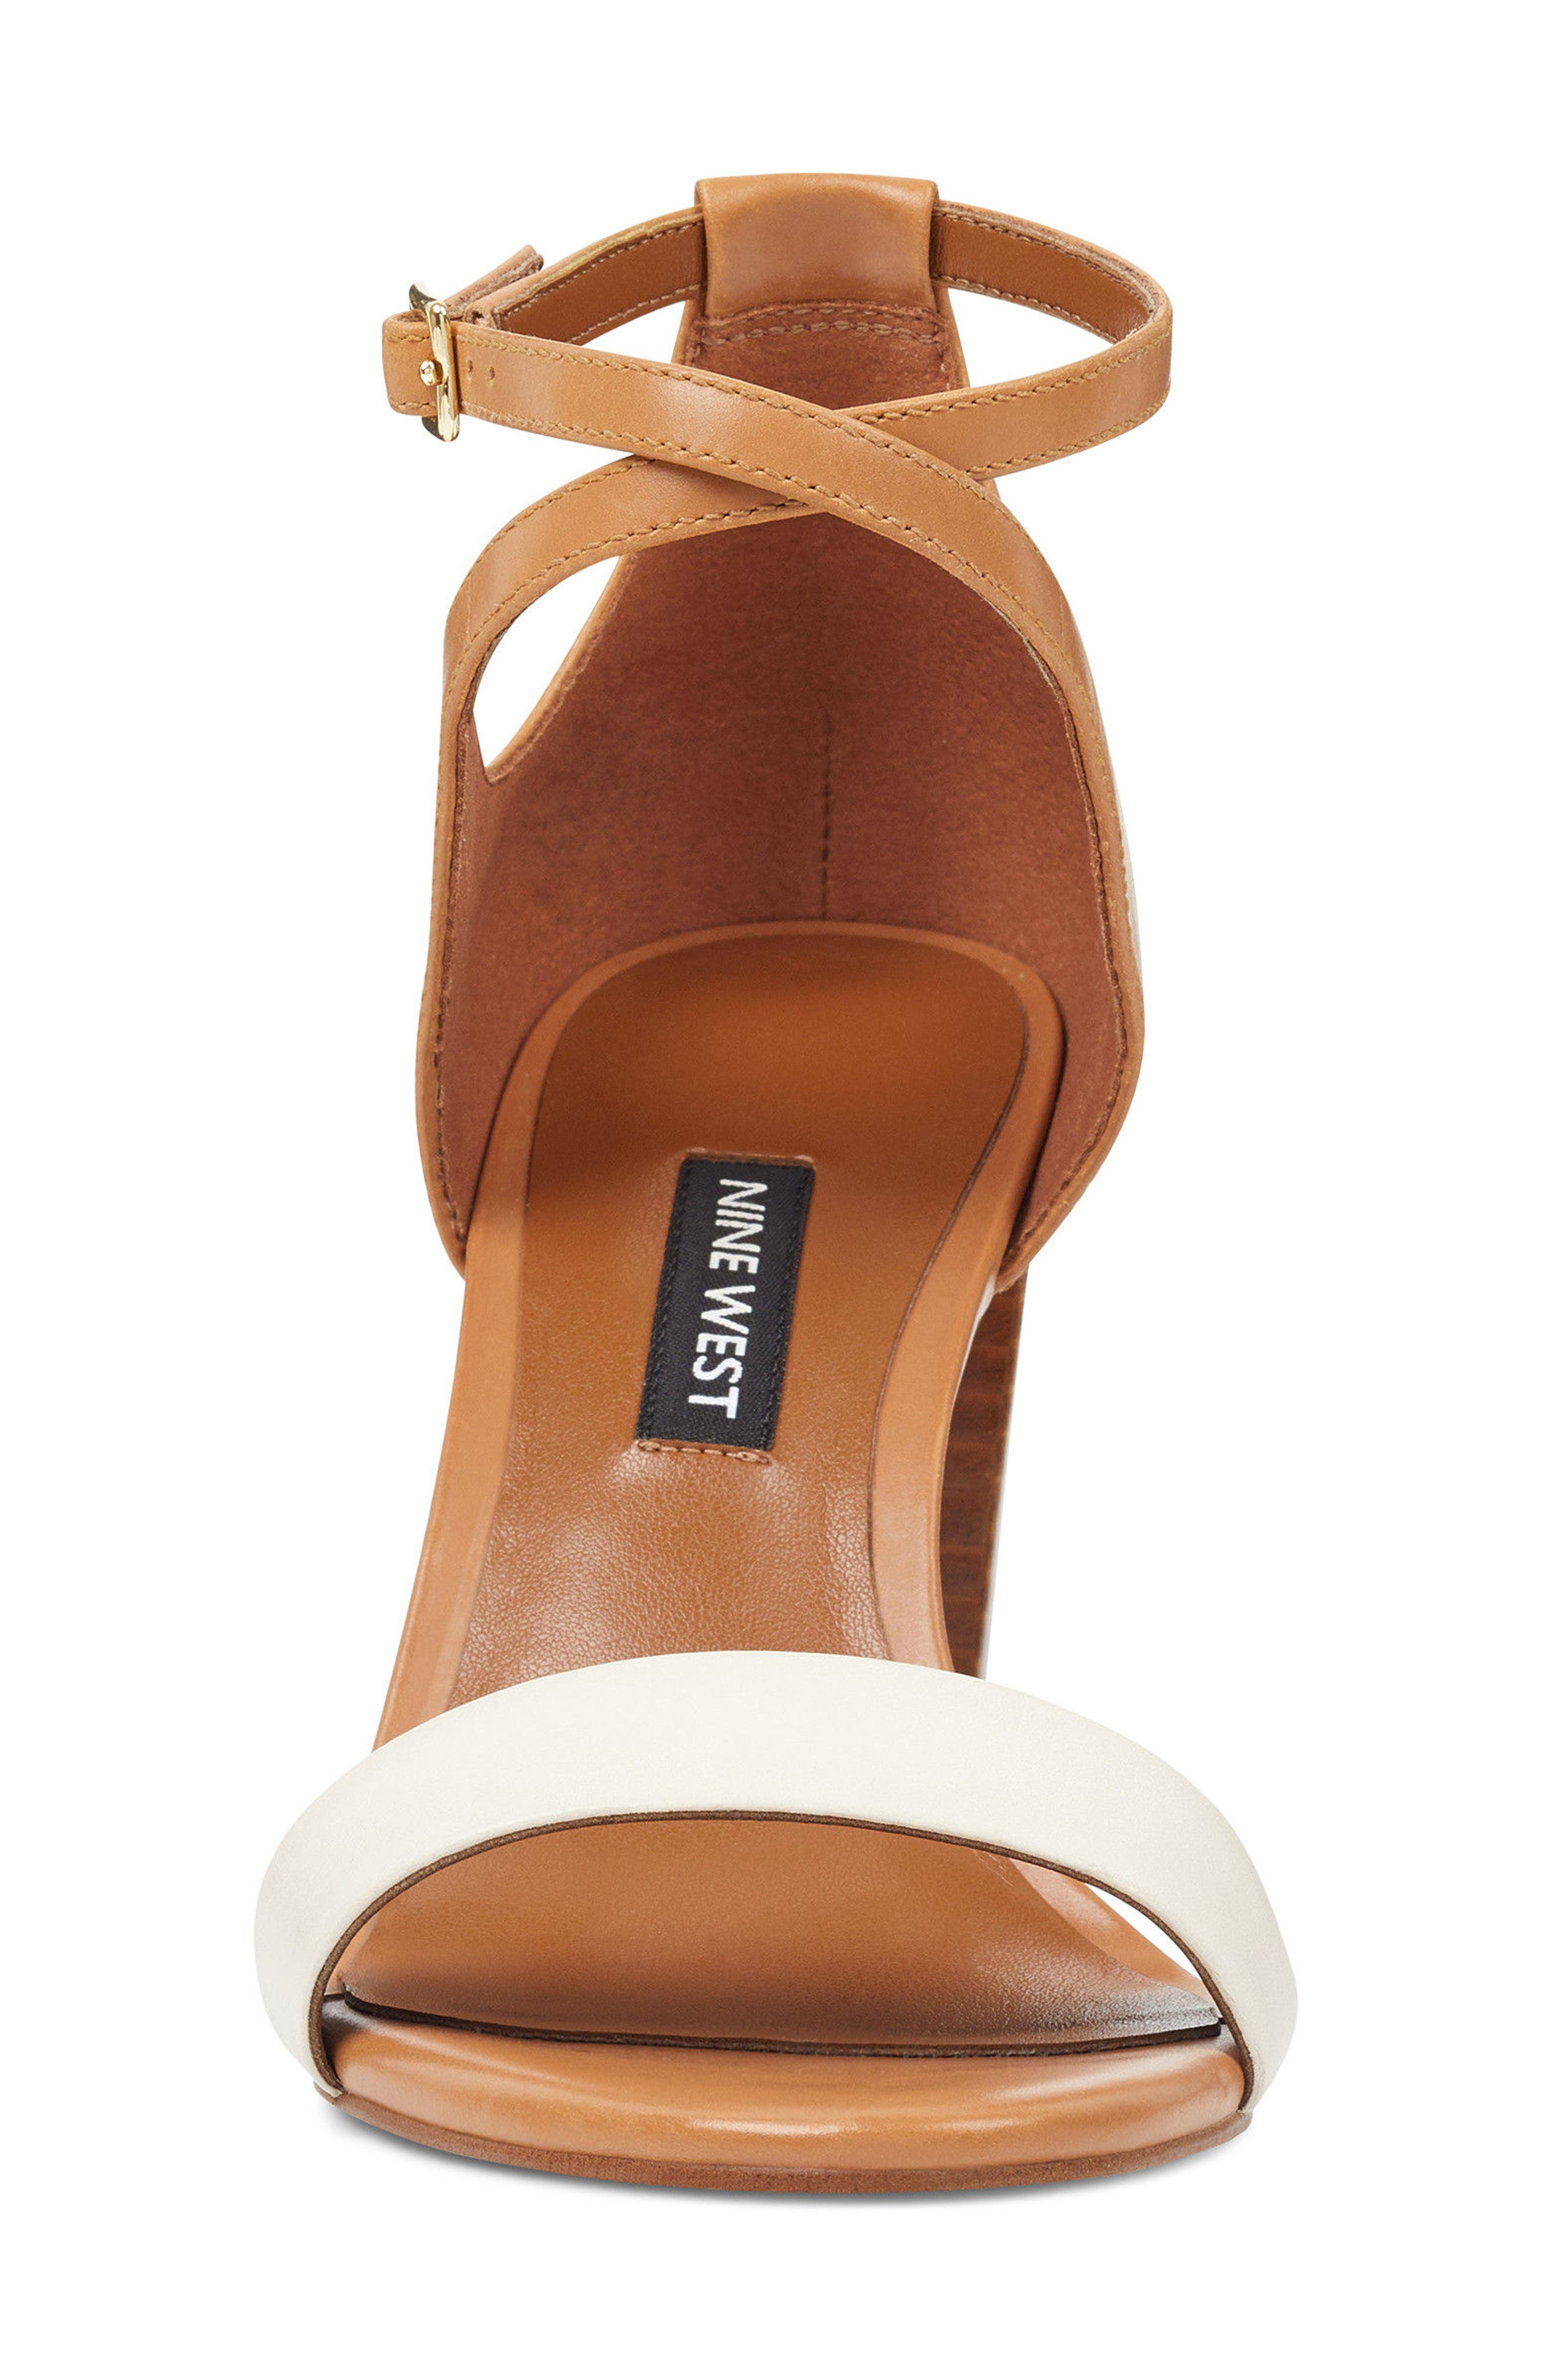 Nunzaya Ankle Strap Sandal,                             Alternate thumbnail 4, color,                             OFF WHITE/ NATURAL LEATHER